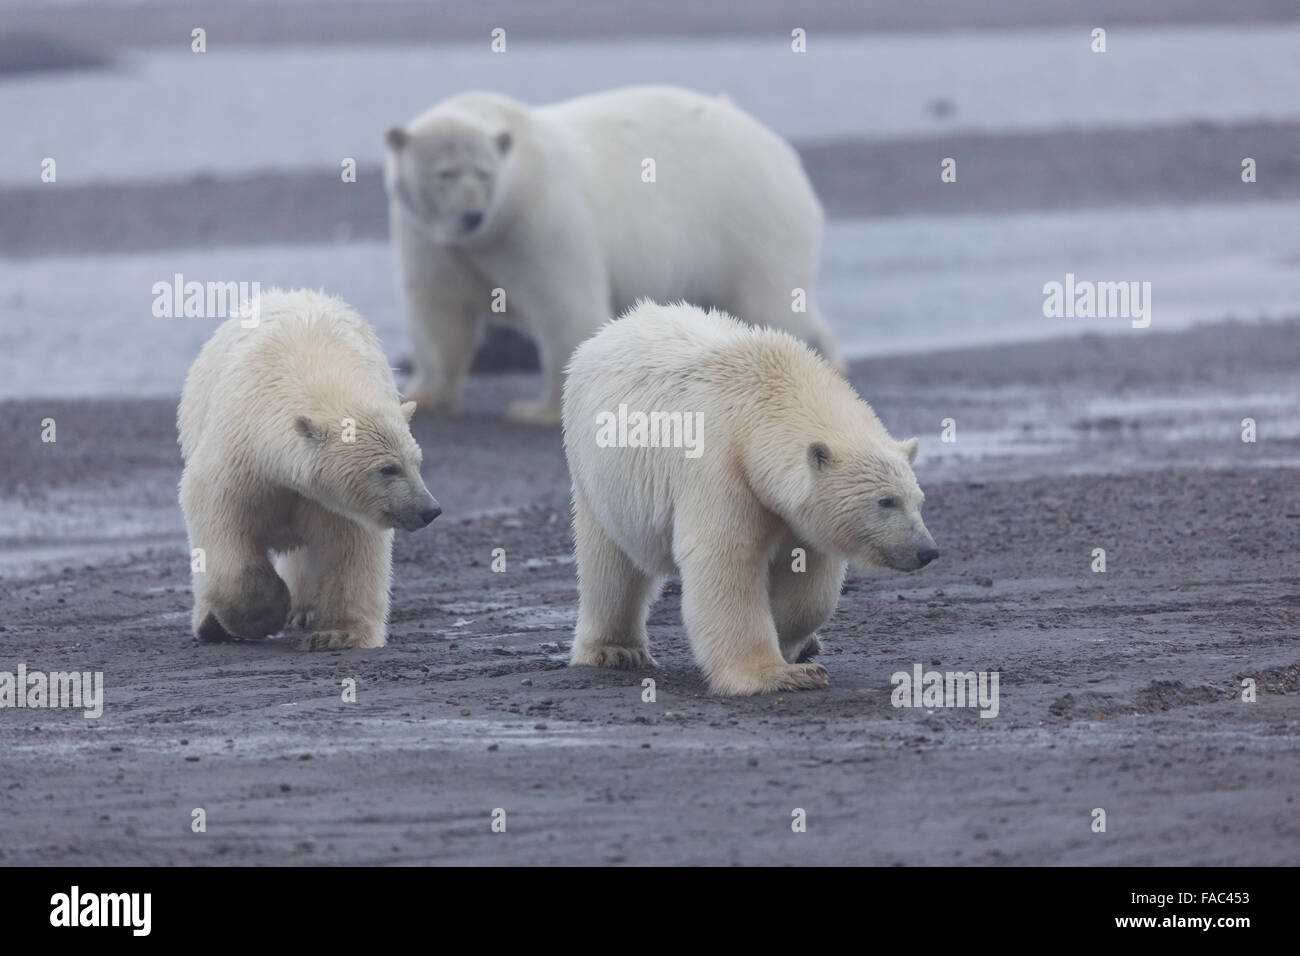 Polar bears (Ursus maritimus),  Arctic National Wildlife Refuge, Alaska. - Stock Image